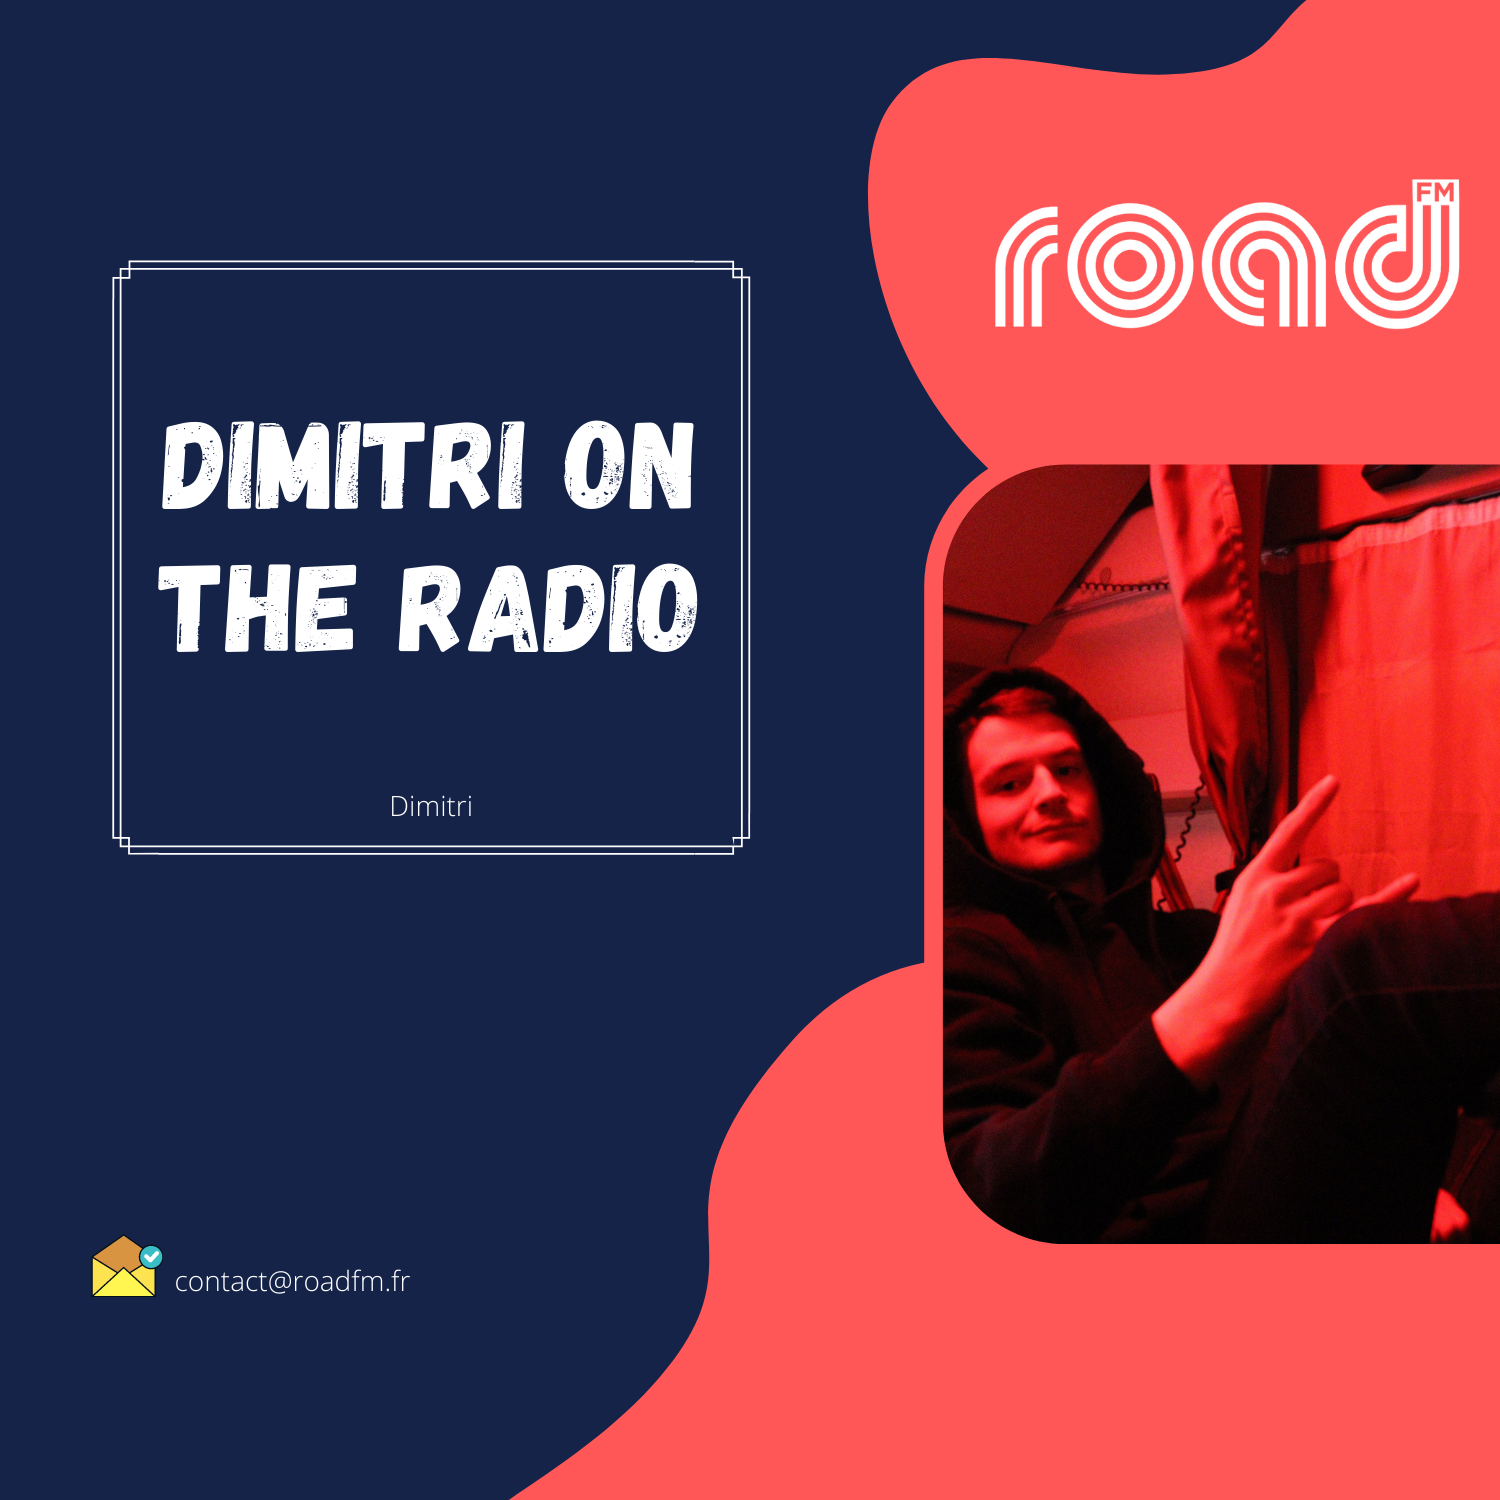 Dimitri On The Radio